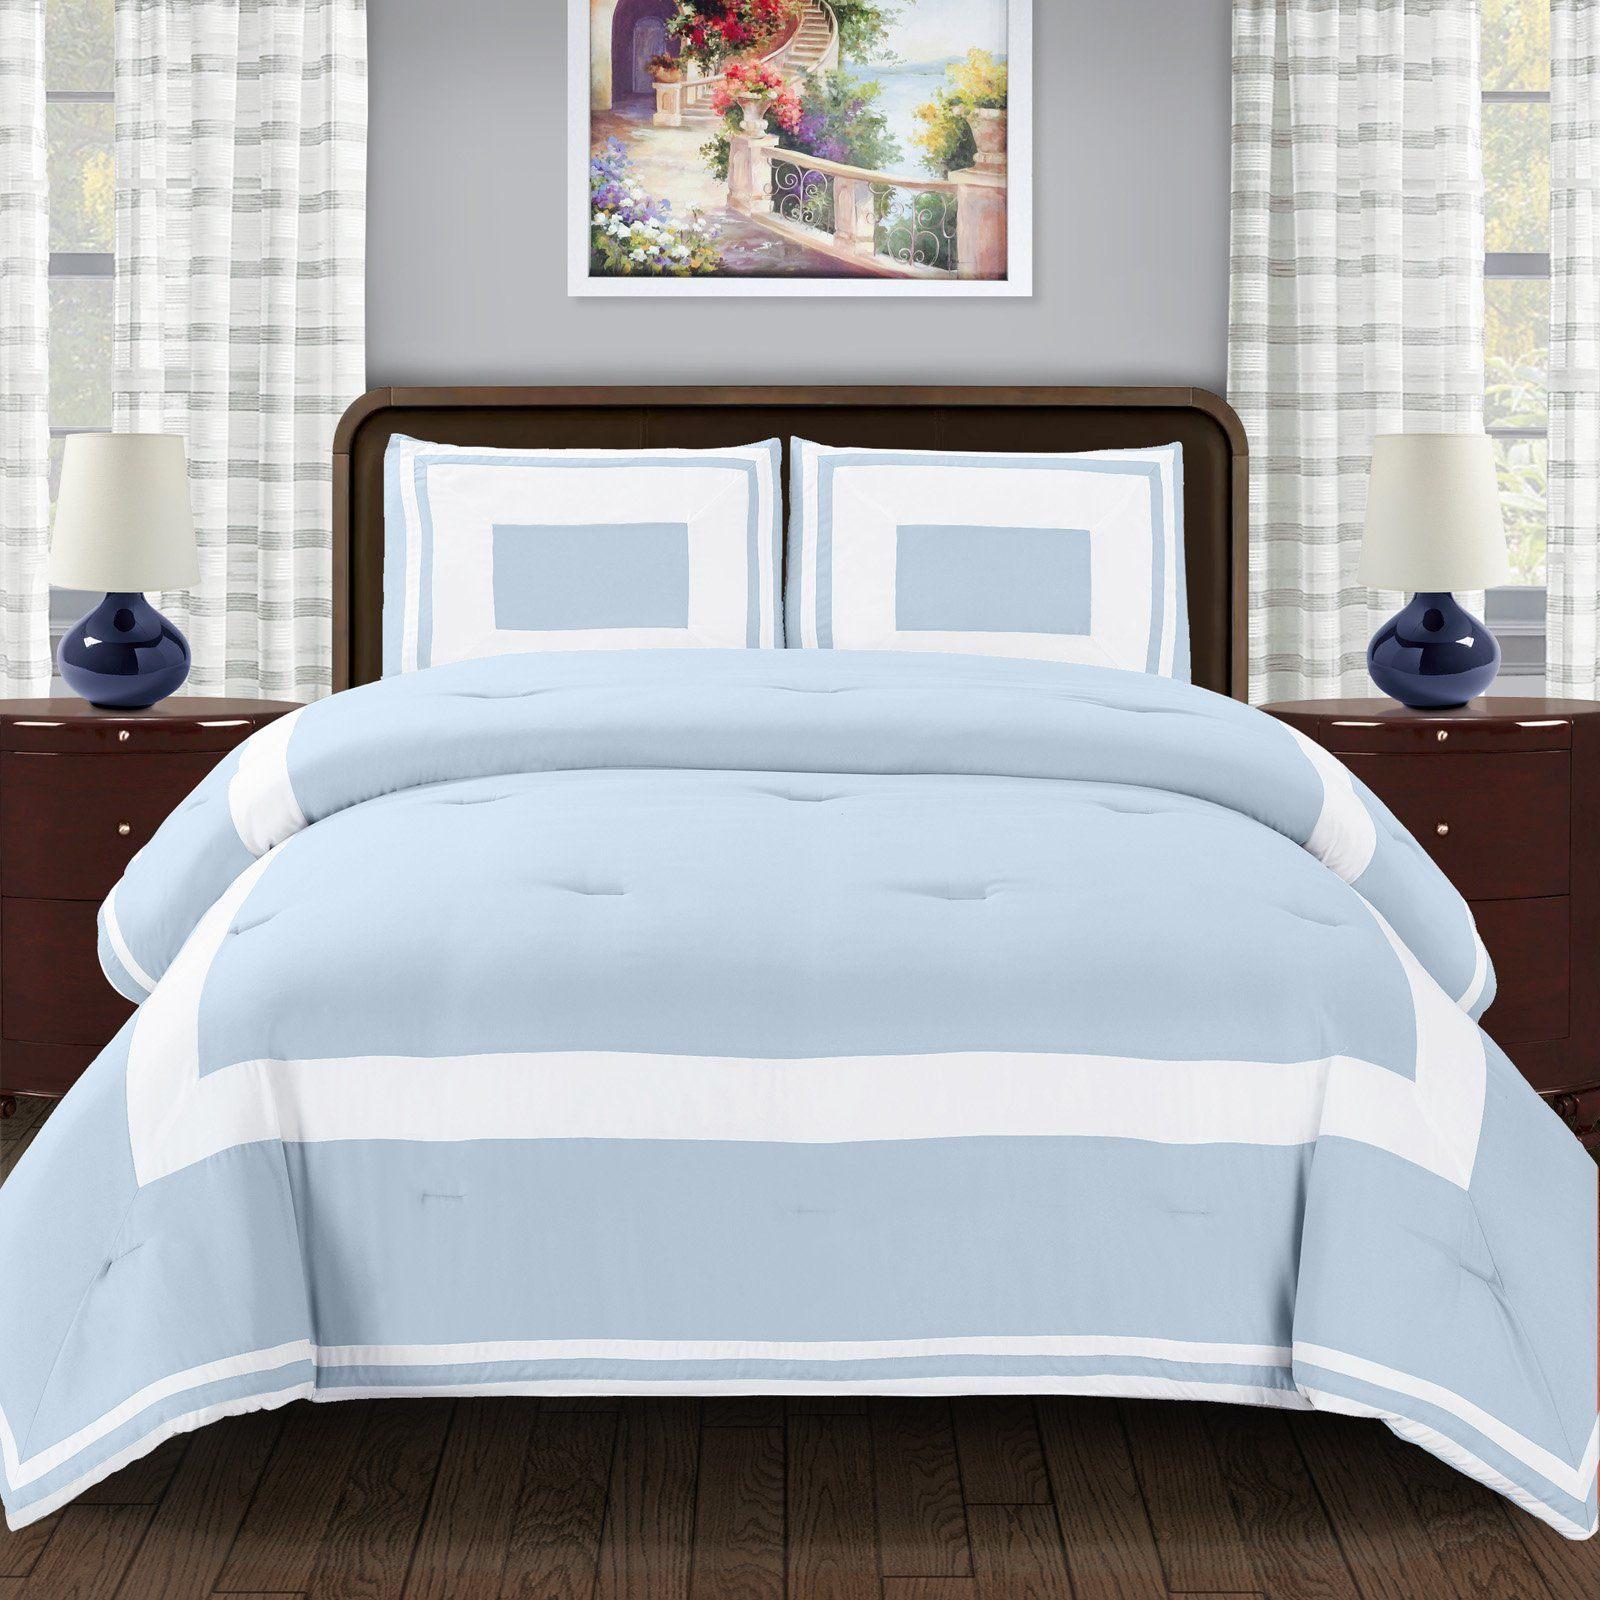 Superior Grammercy Color Blocked Comforter Set with Pillow Sham Luxury Hotel Bedding with Soft Microfiber Shell All Season Down Alternative Fill Twin//Twin XL Coral